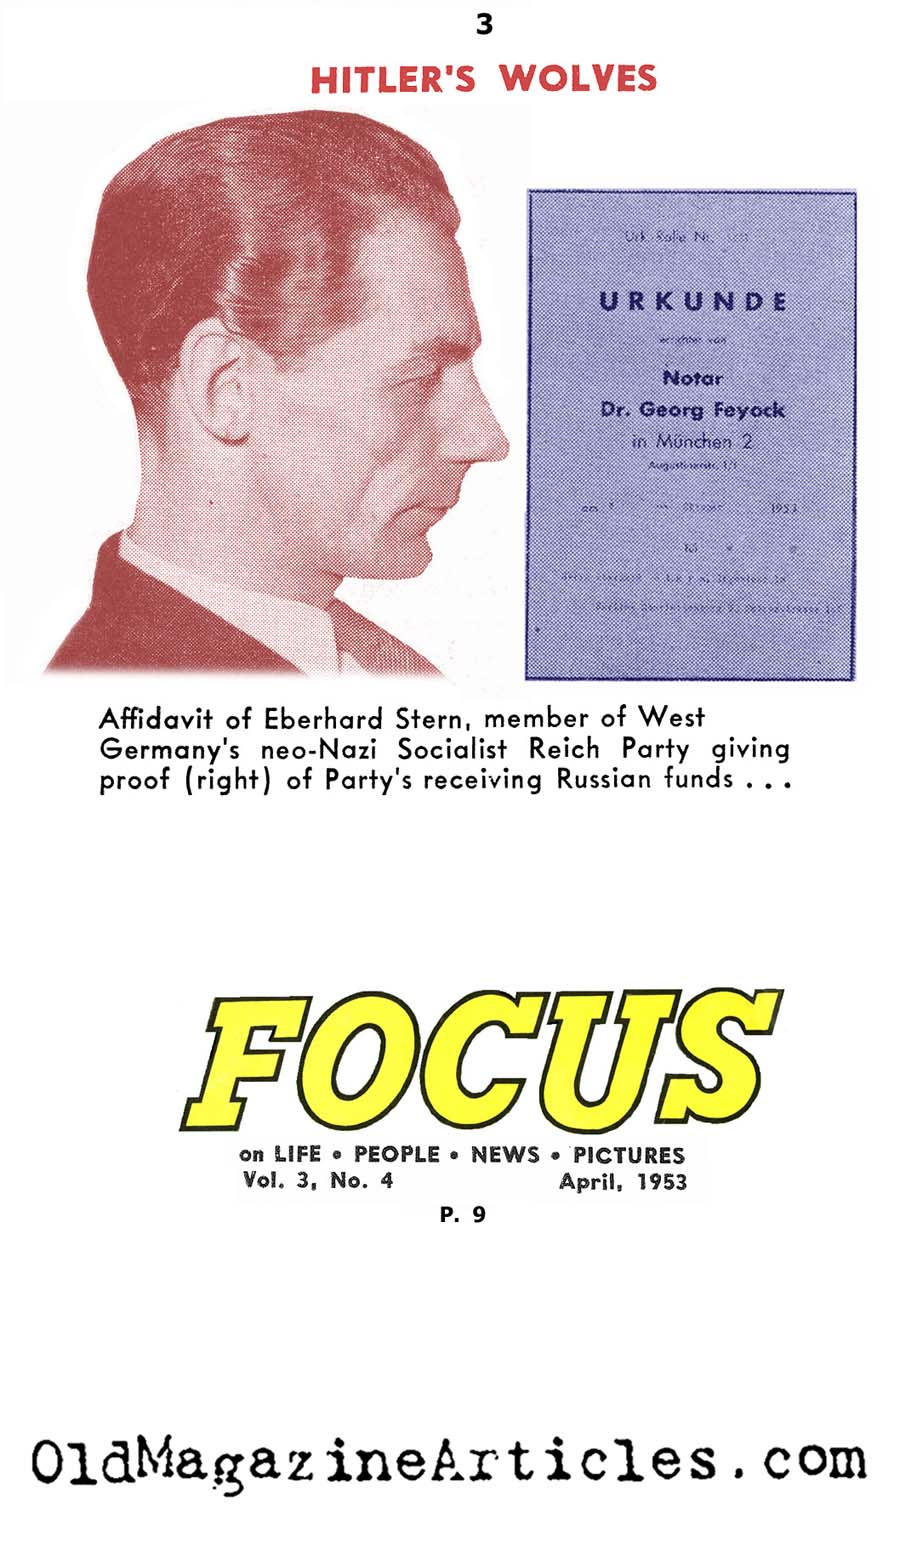 Nazis in The East German Government (Focus Magazine, 1953)